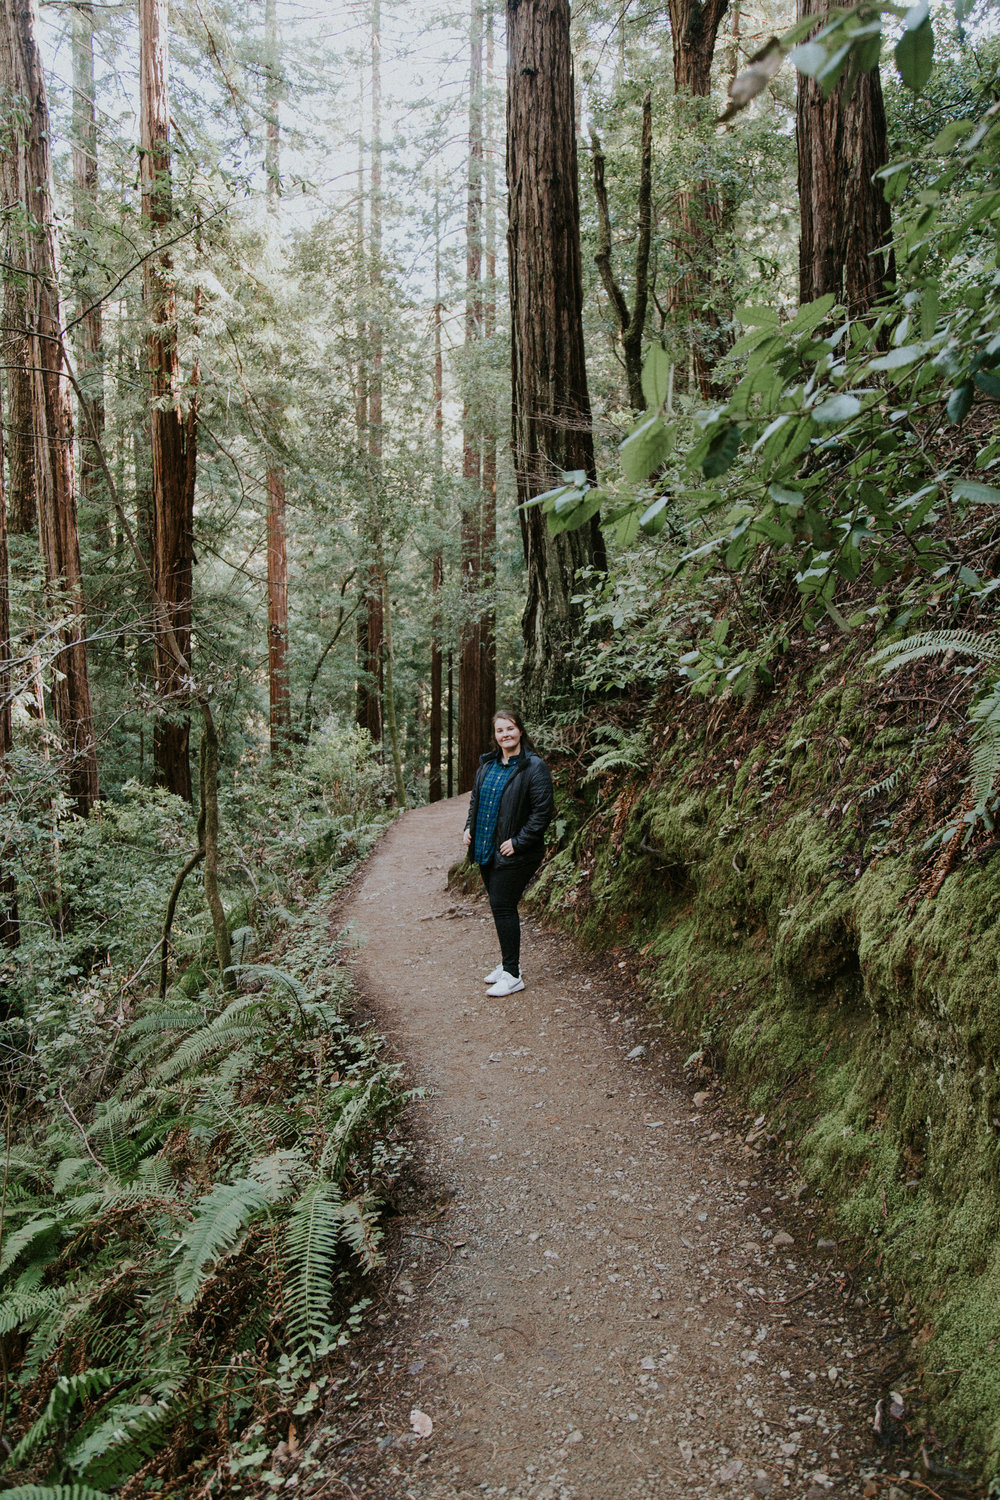 Redwood Muir Woods San Francisco California Travel Hike nature wanderlust CA SF best things to do in northern cali map trail adventure photographer photography rachel Hanon moss path